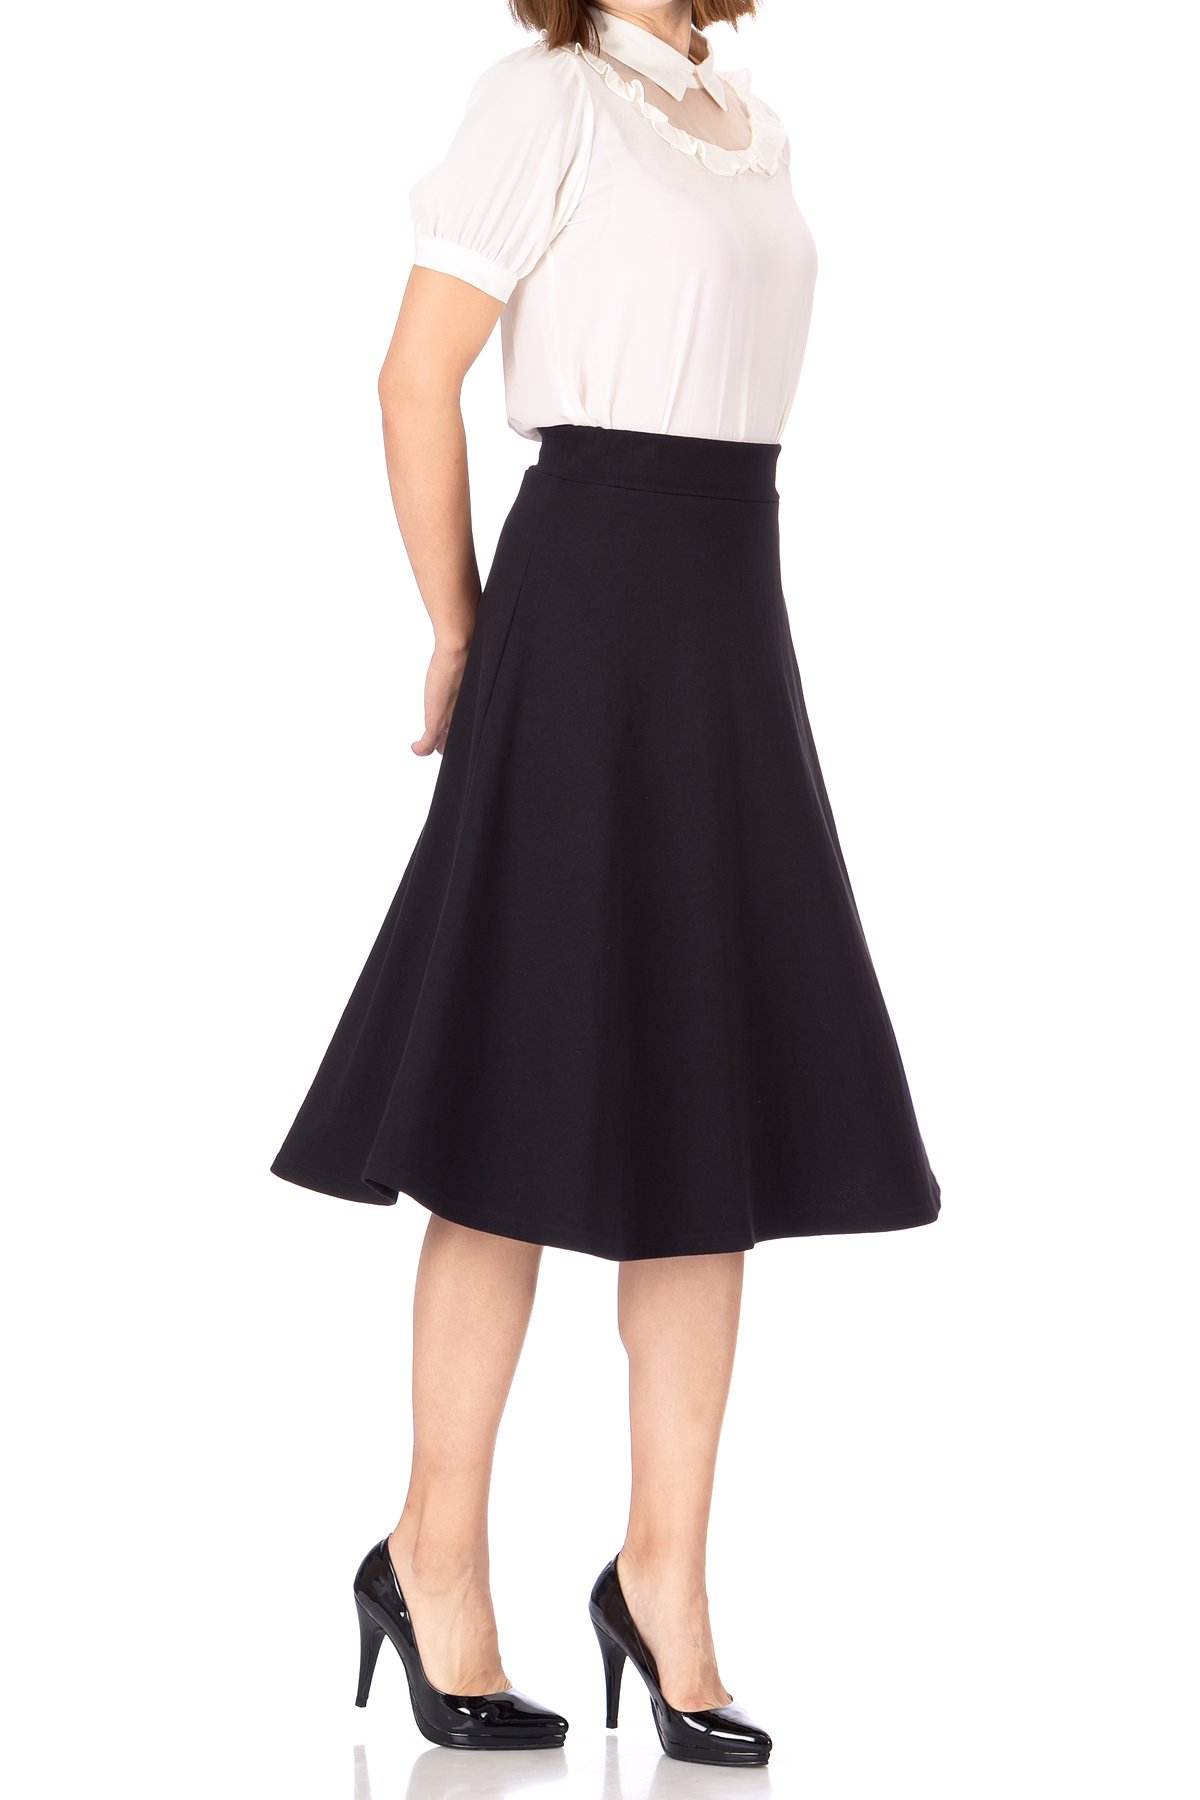 Everyday High Waist A Line Flared Skater Midi Skirt Black 01